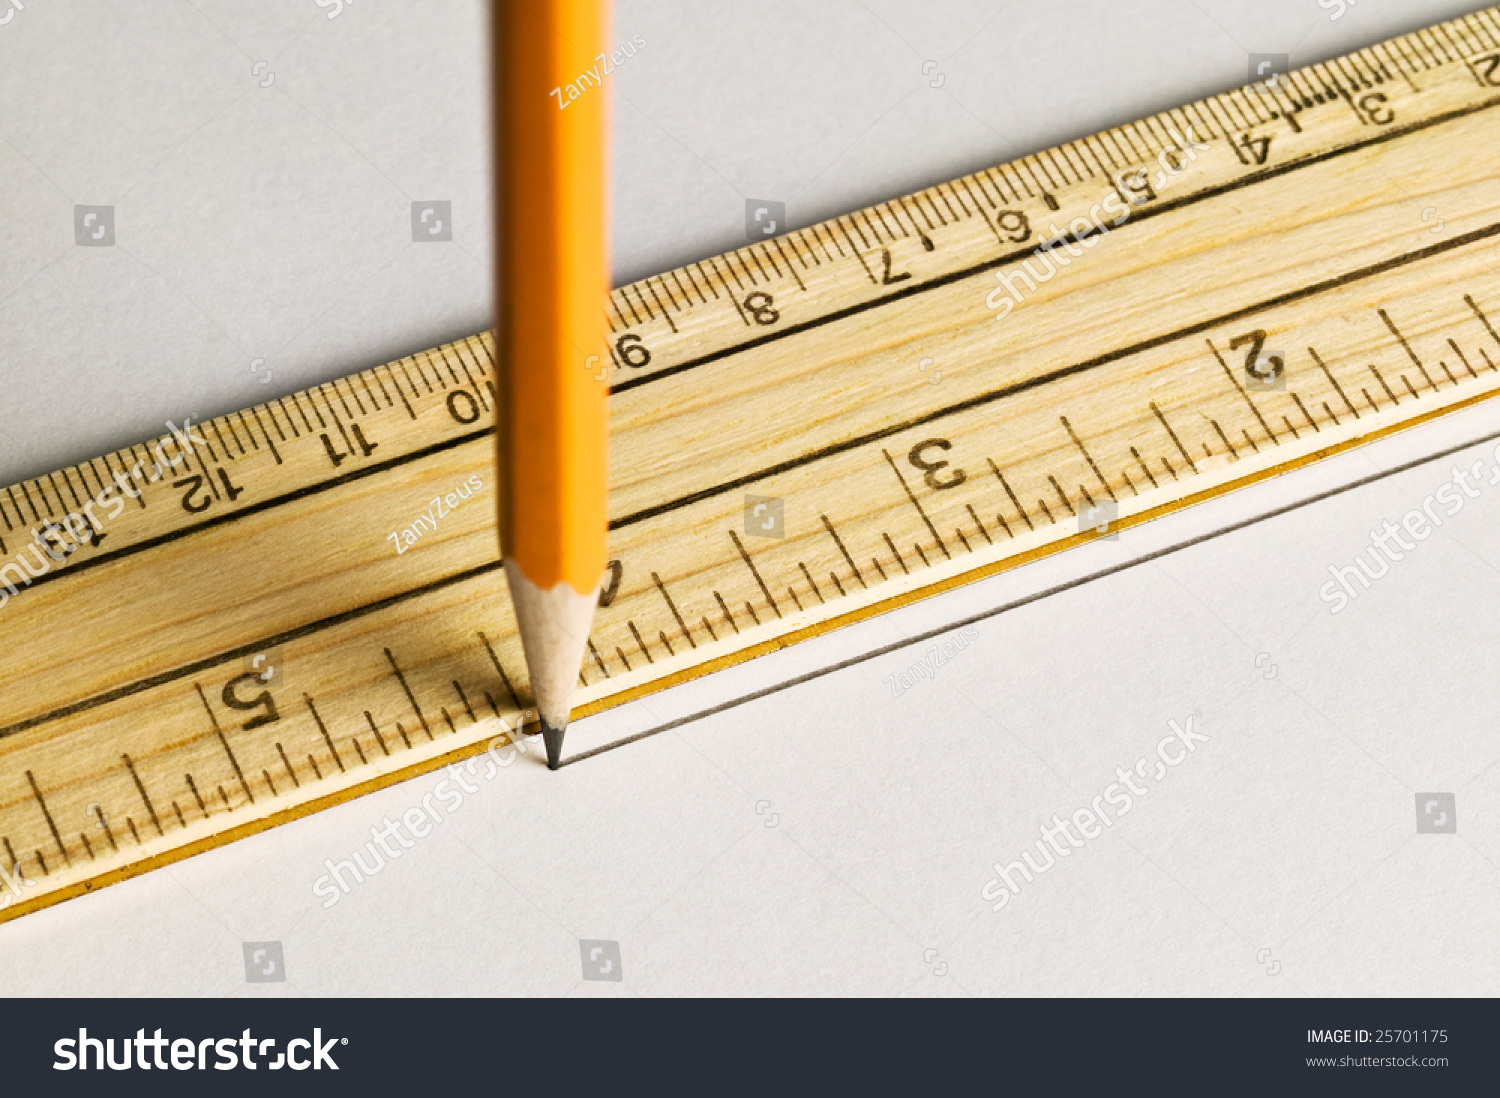 Drawing Lines With A Ruler Ks : Pencil drawing a straight line with ruler stock photo